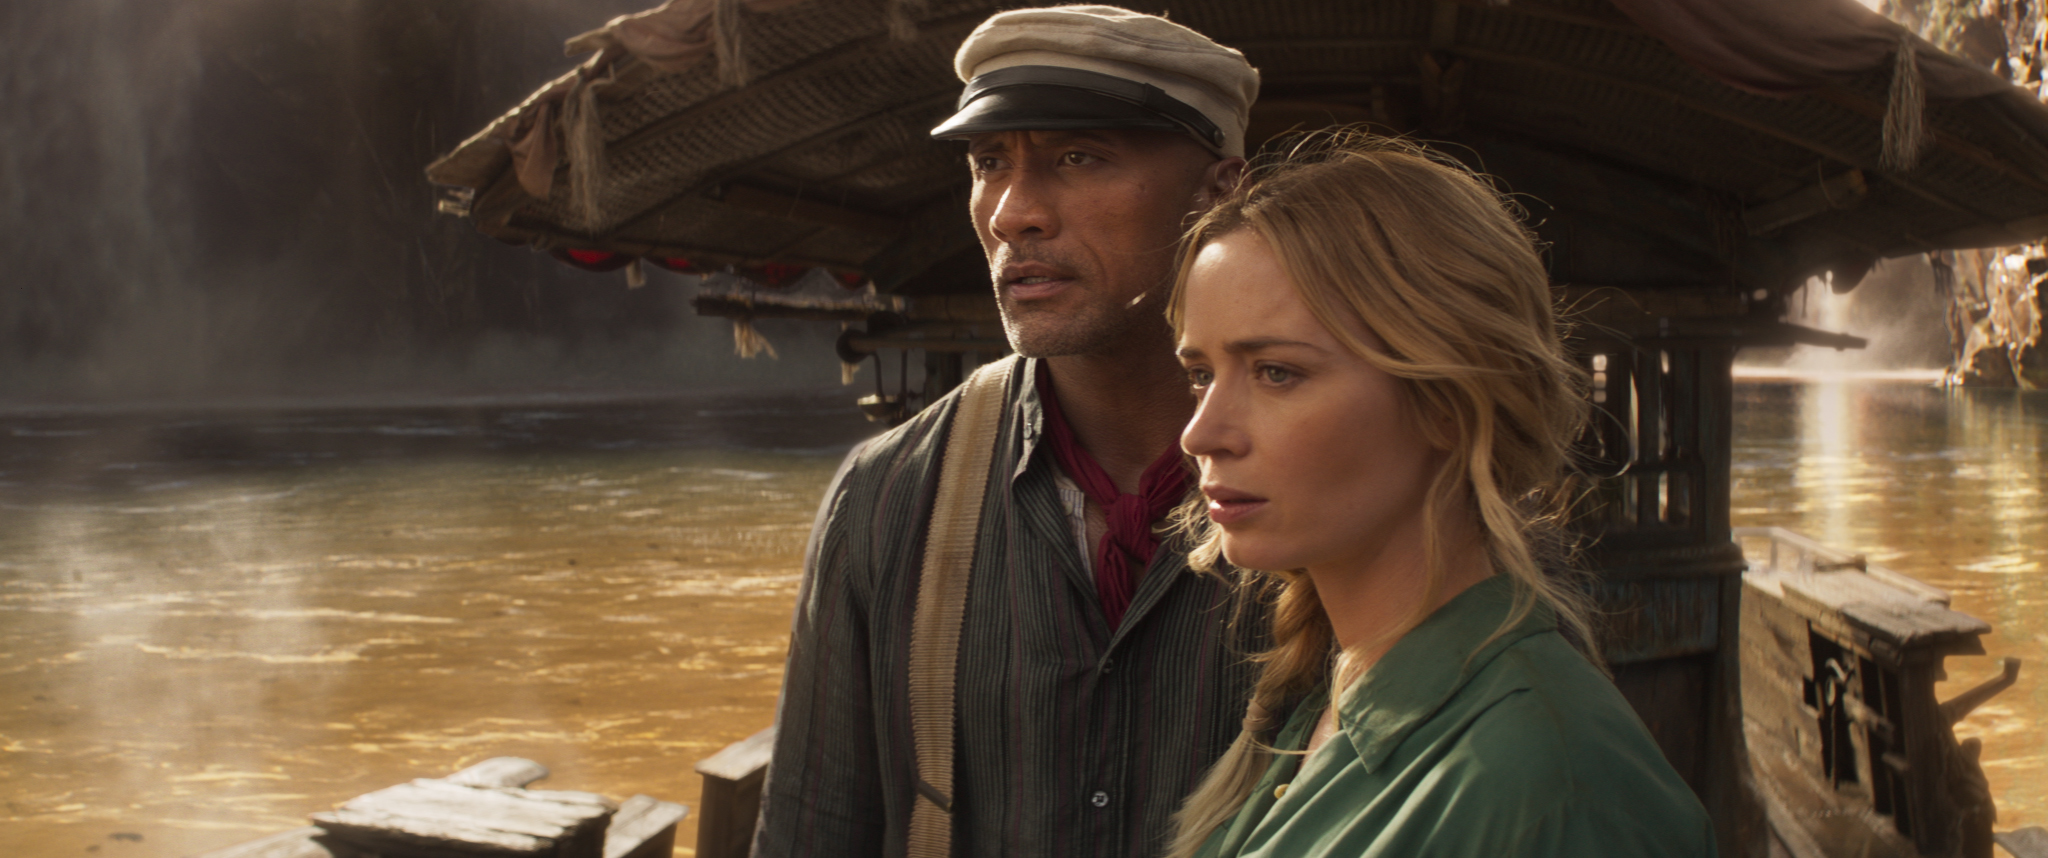 emily blunt as lily and dwayne the rock johnson as frank. they stand on a riverboat, lily slightly in front, blonde hair loose. frank is behind here, a strong, tall man wearing a sailor's hat